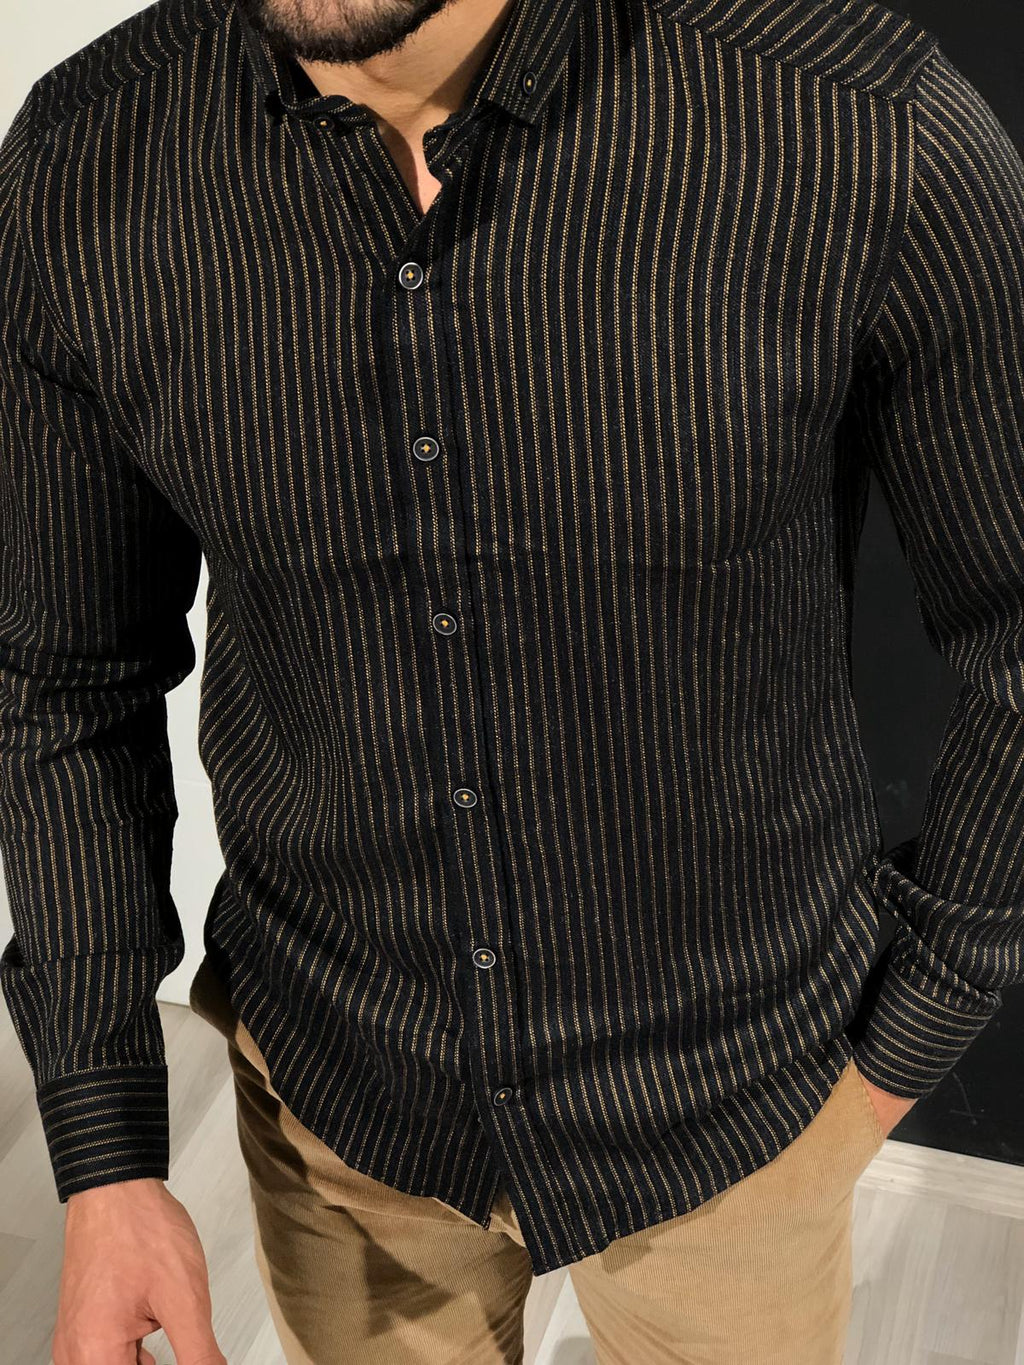 Ladalii Slim-Fit Striped Shirt black